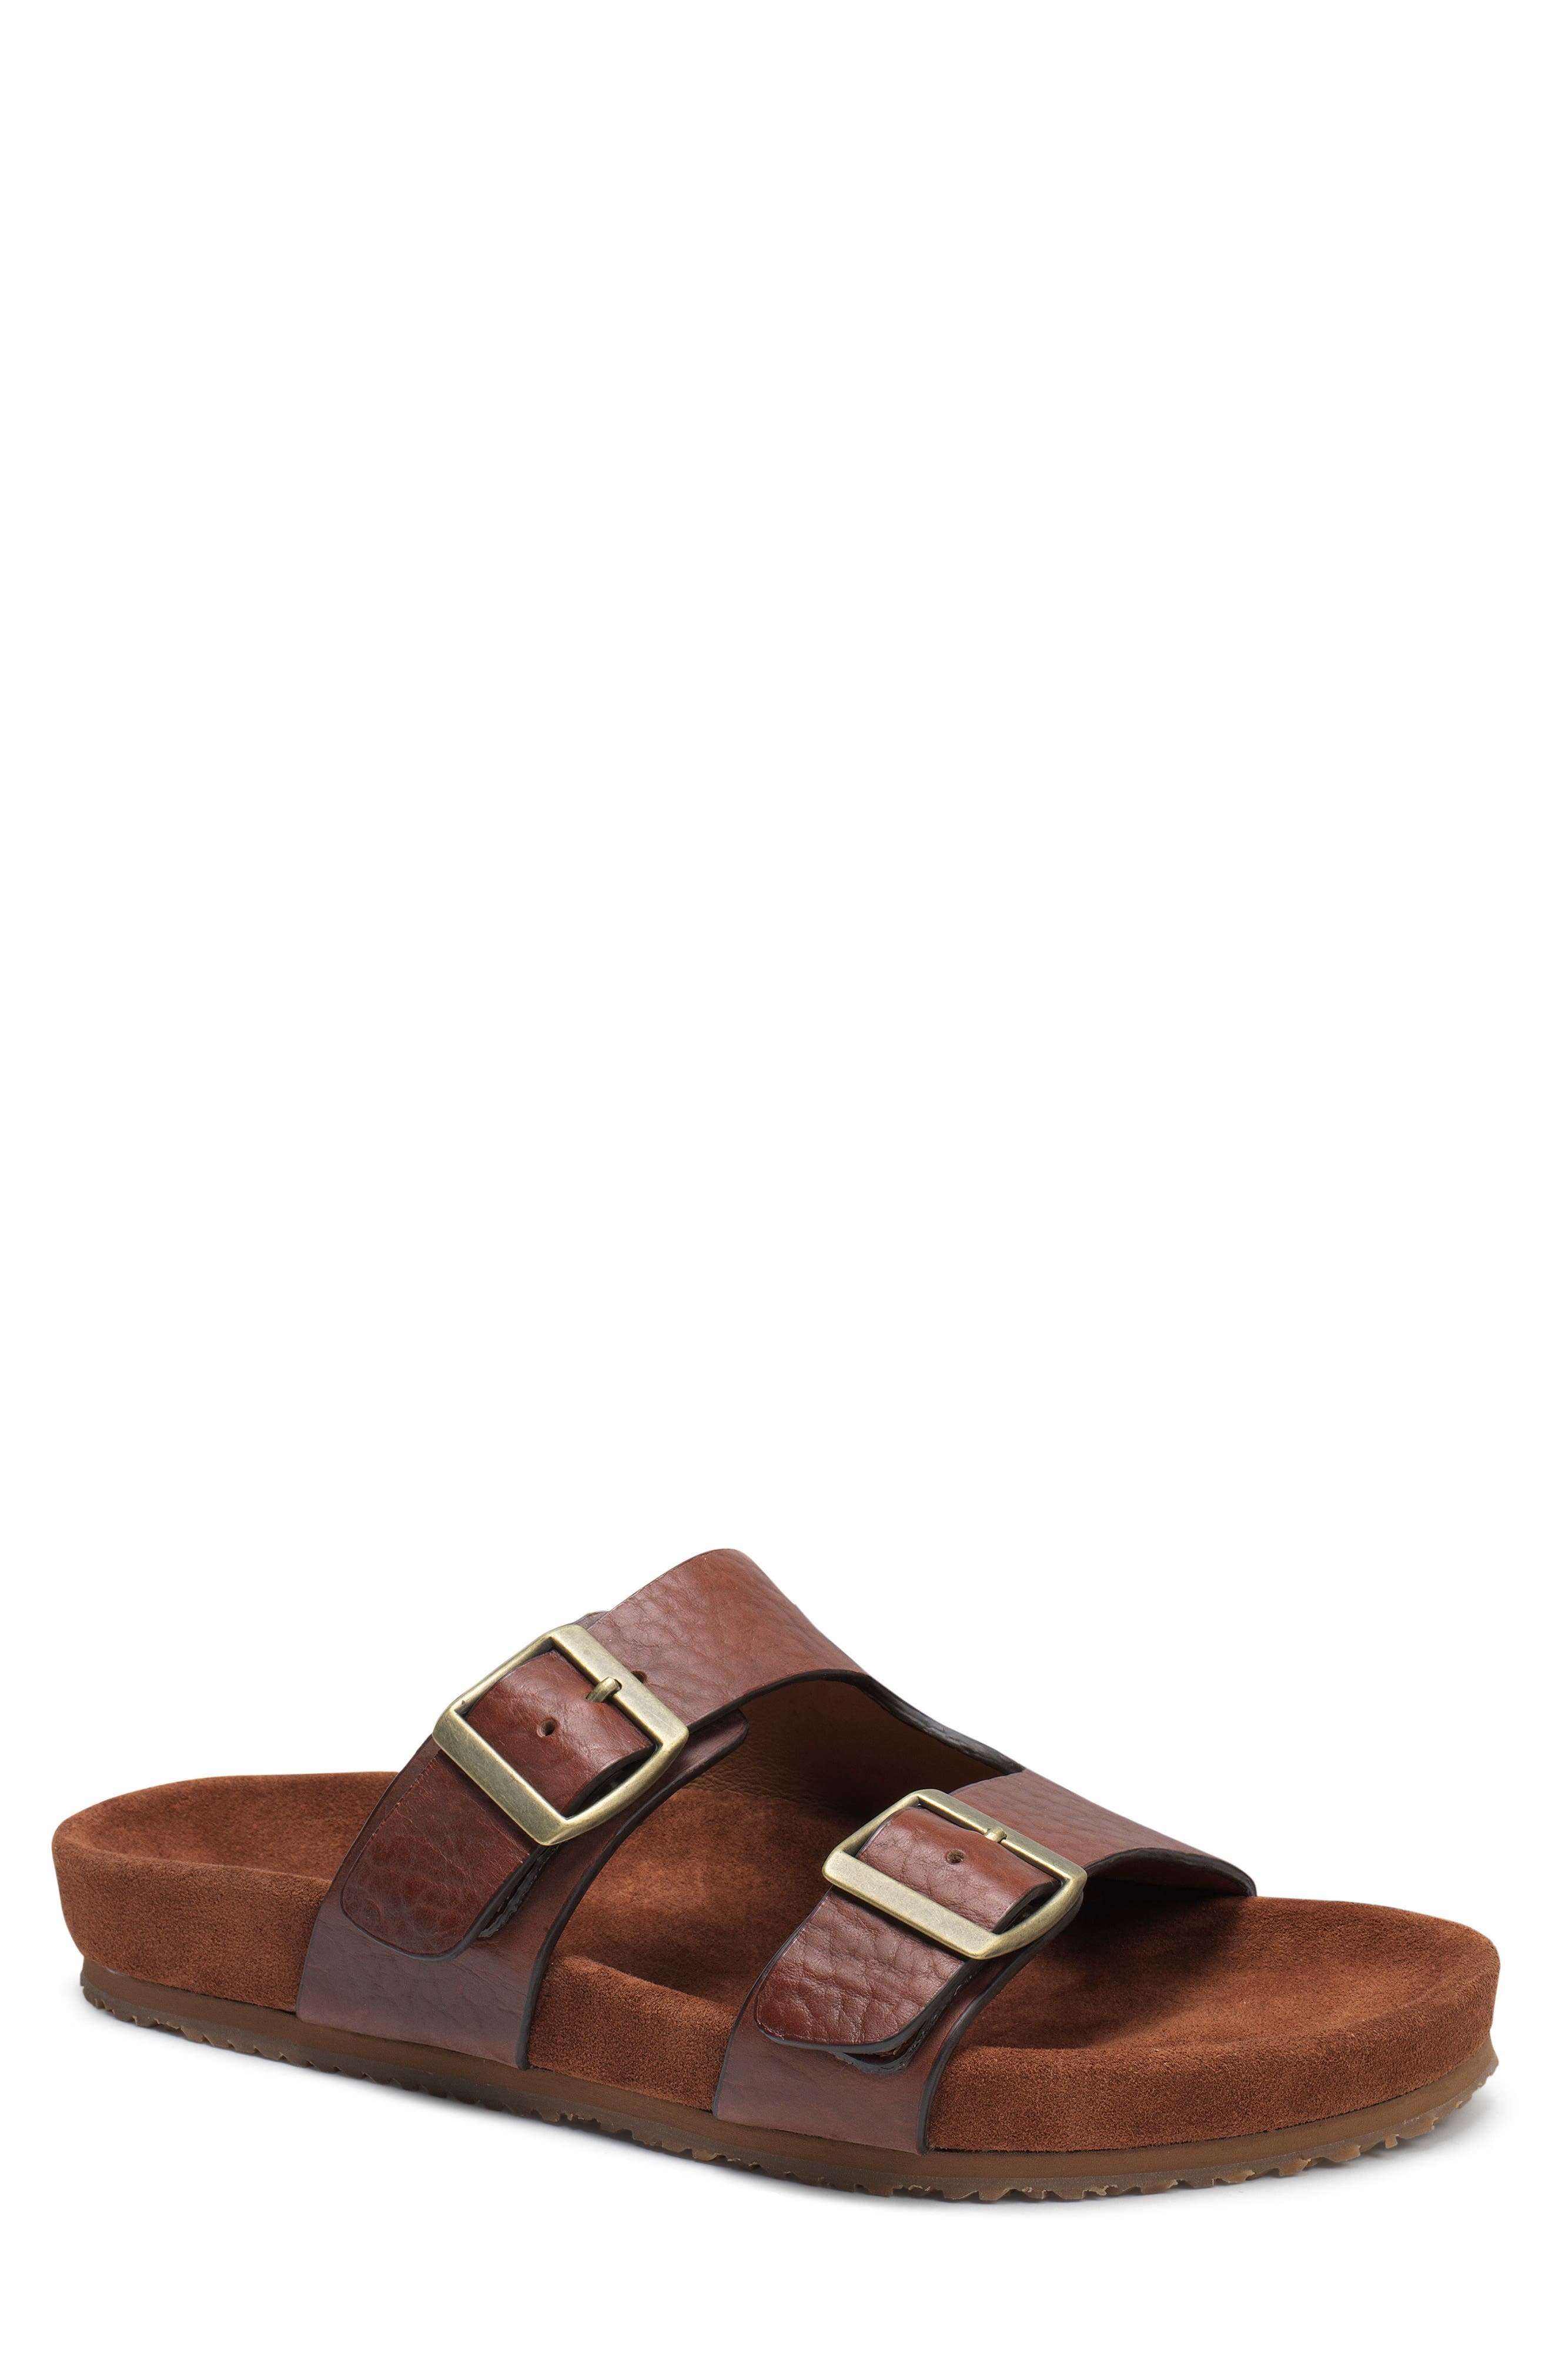 Findley Slide Sandal,                         Main,                         color, 235